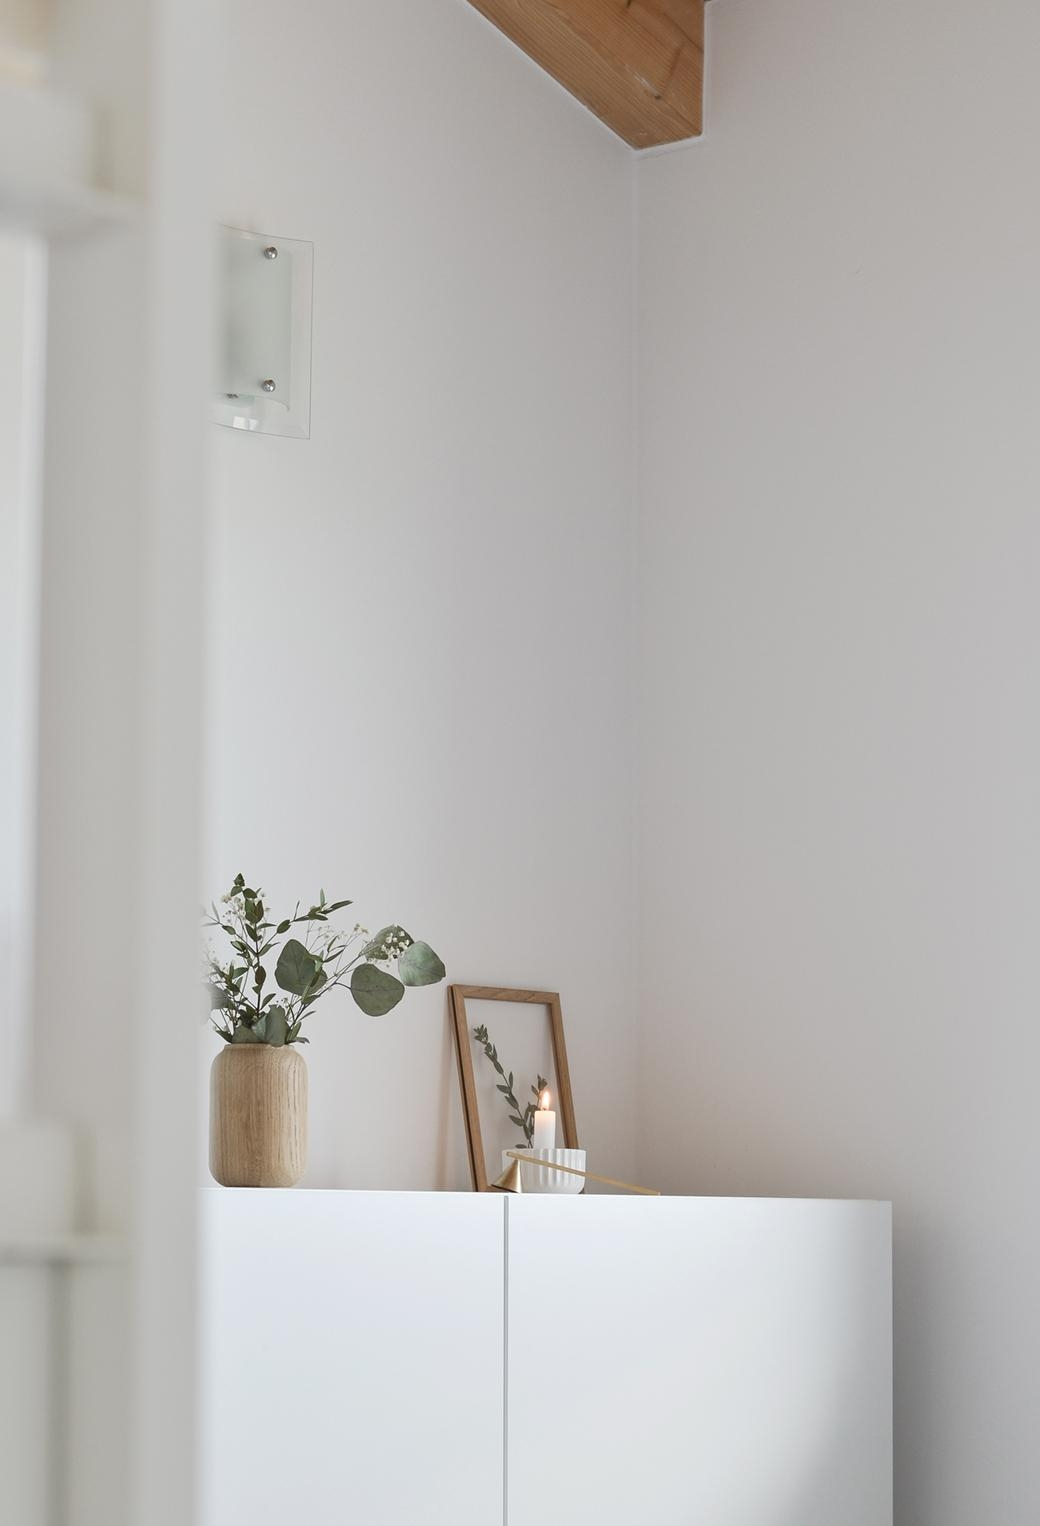 Schlafzimmer ecke  bedroom corner candle puristic scandinavian minimalsm interior whitehome home flowers  737dda36 5b96 44ae 8697 2734e51f3b03